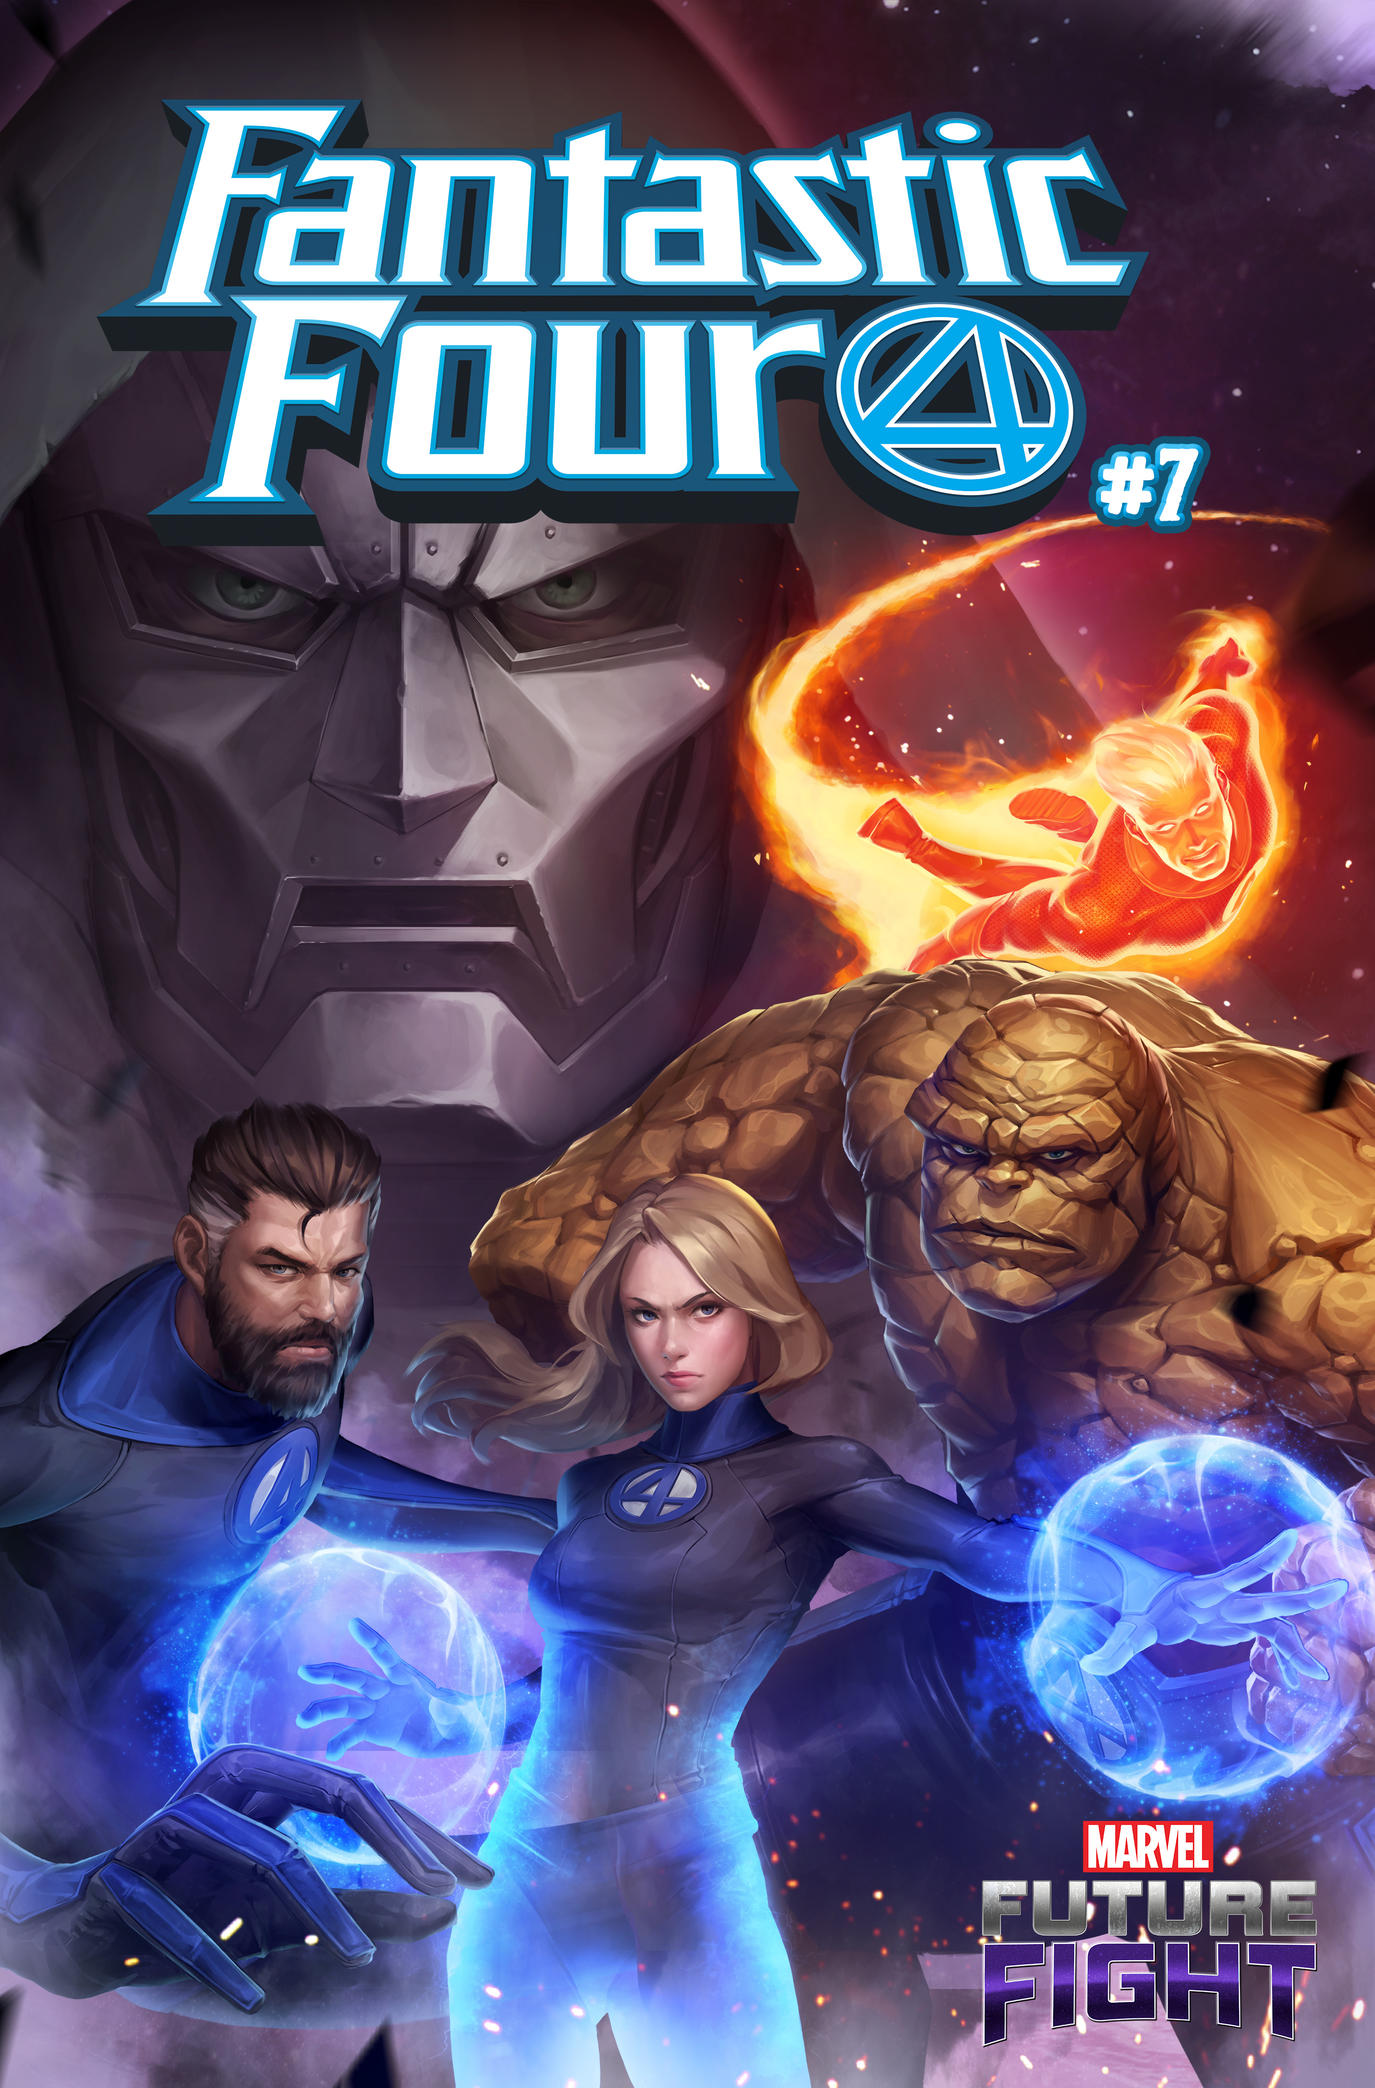 Marvel Future Fight (FANTASTIC FOUR #7)